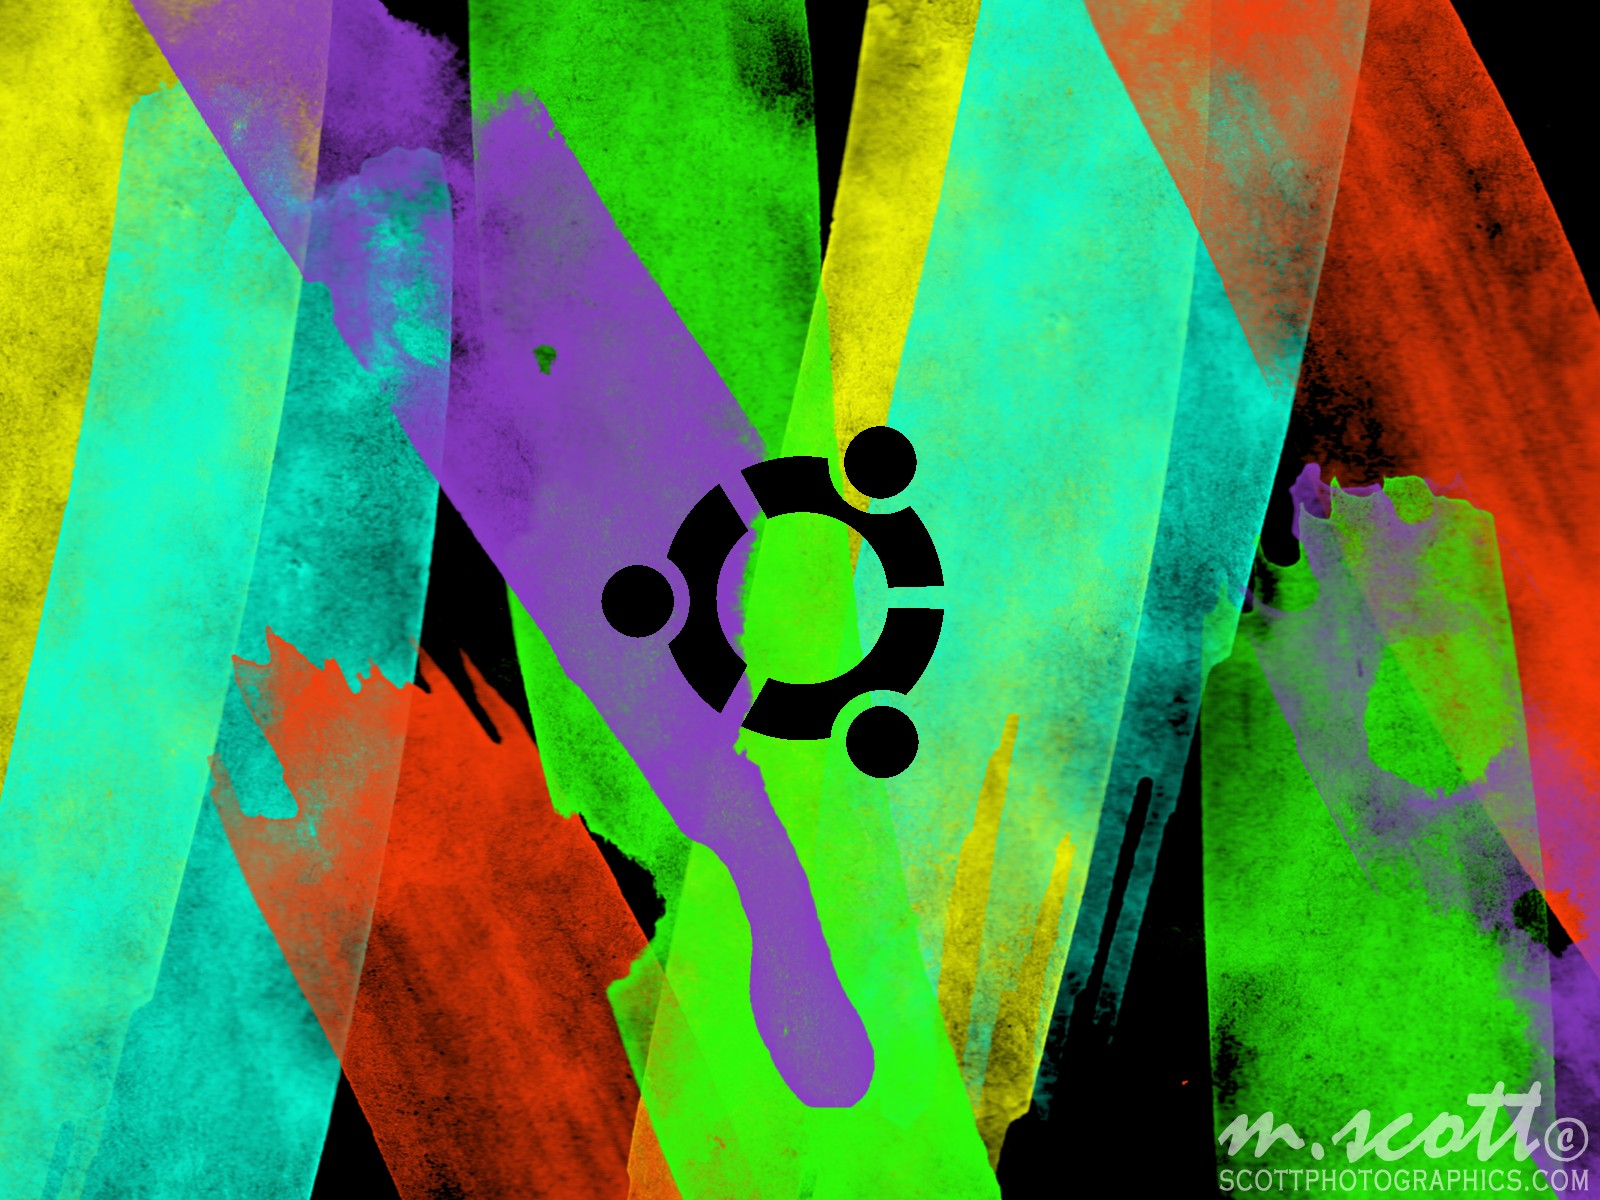 http://www.images.scottphotographics.com/how-to-make-a-water-colour-ubuntu-wallpaper-in-gimp/water-colour-gimp-colours-ubuntu.jpg